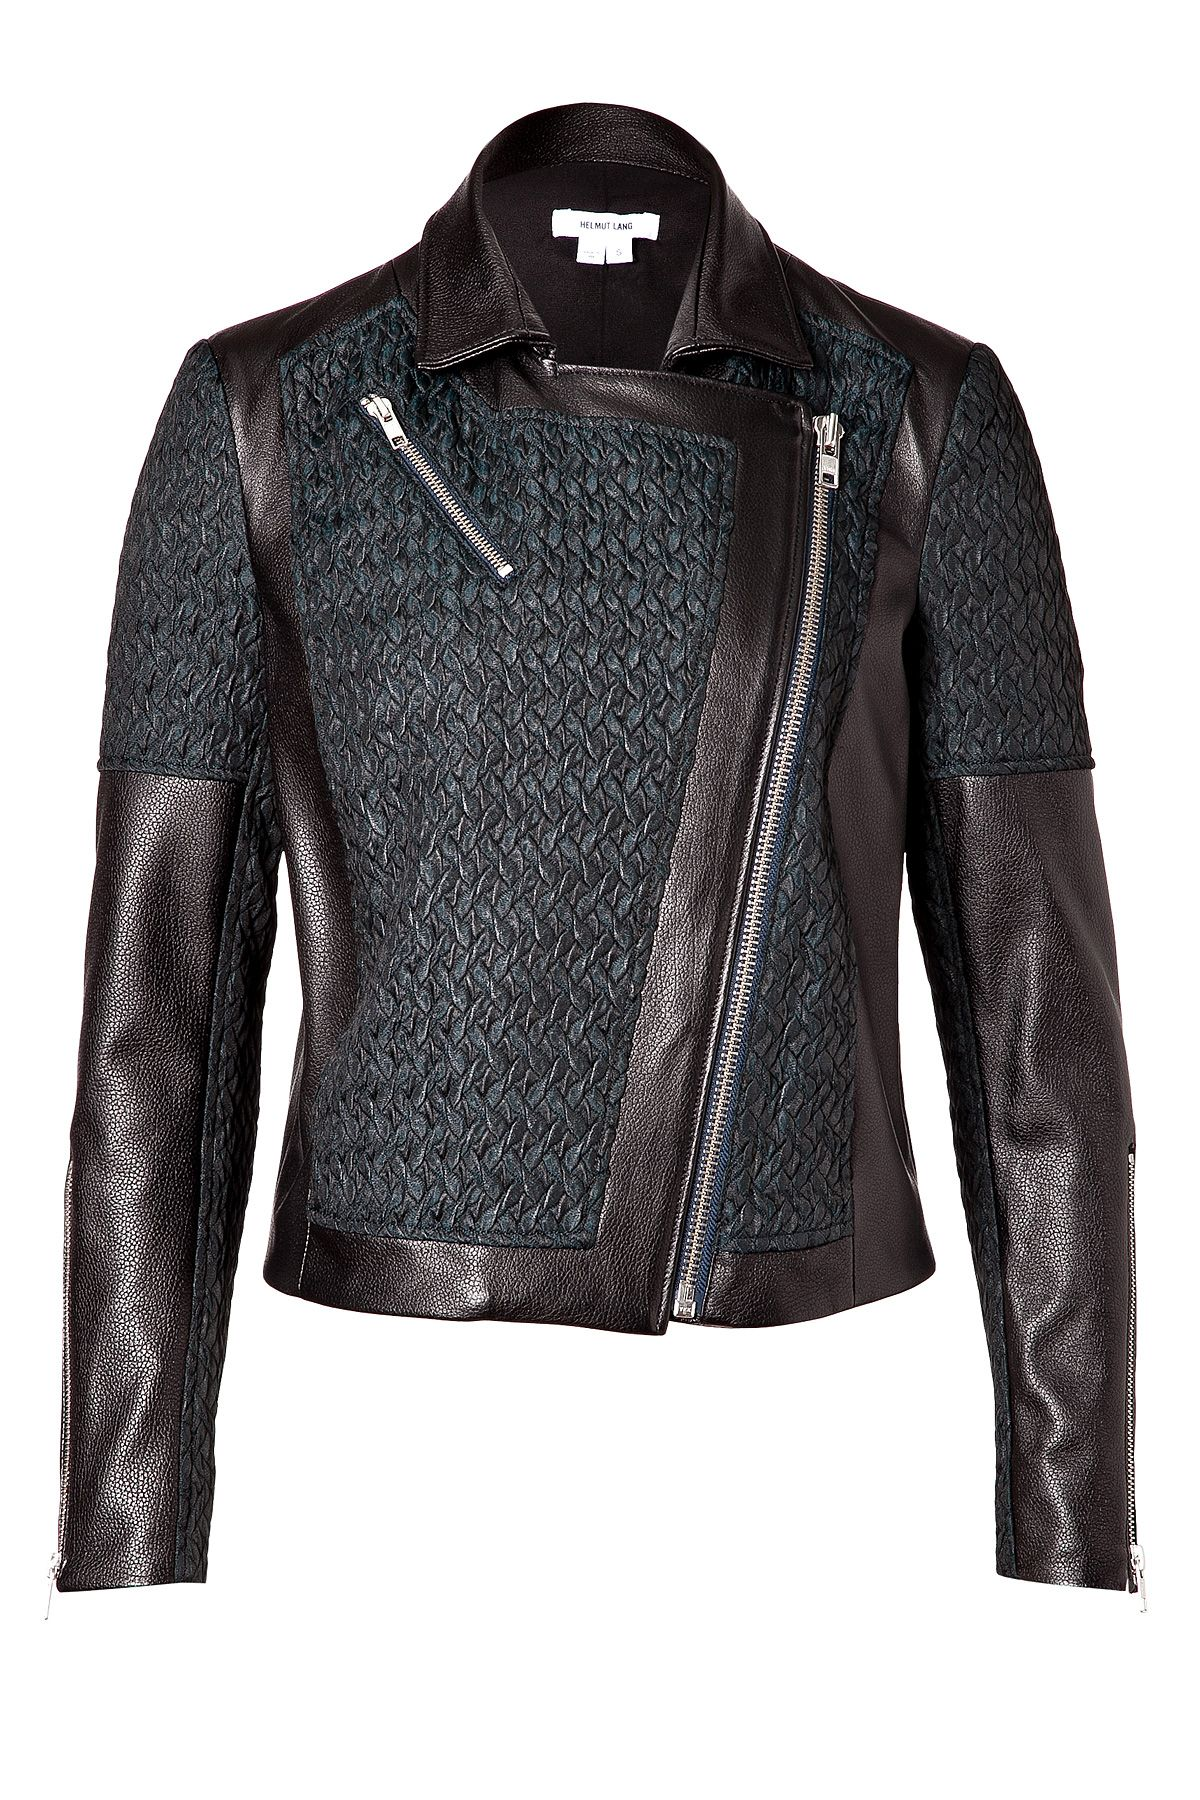 Leather Paneled Biker Jacket Jackets, Leather jackets